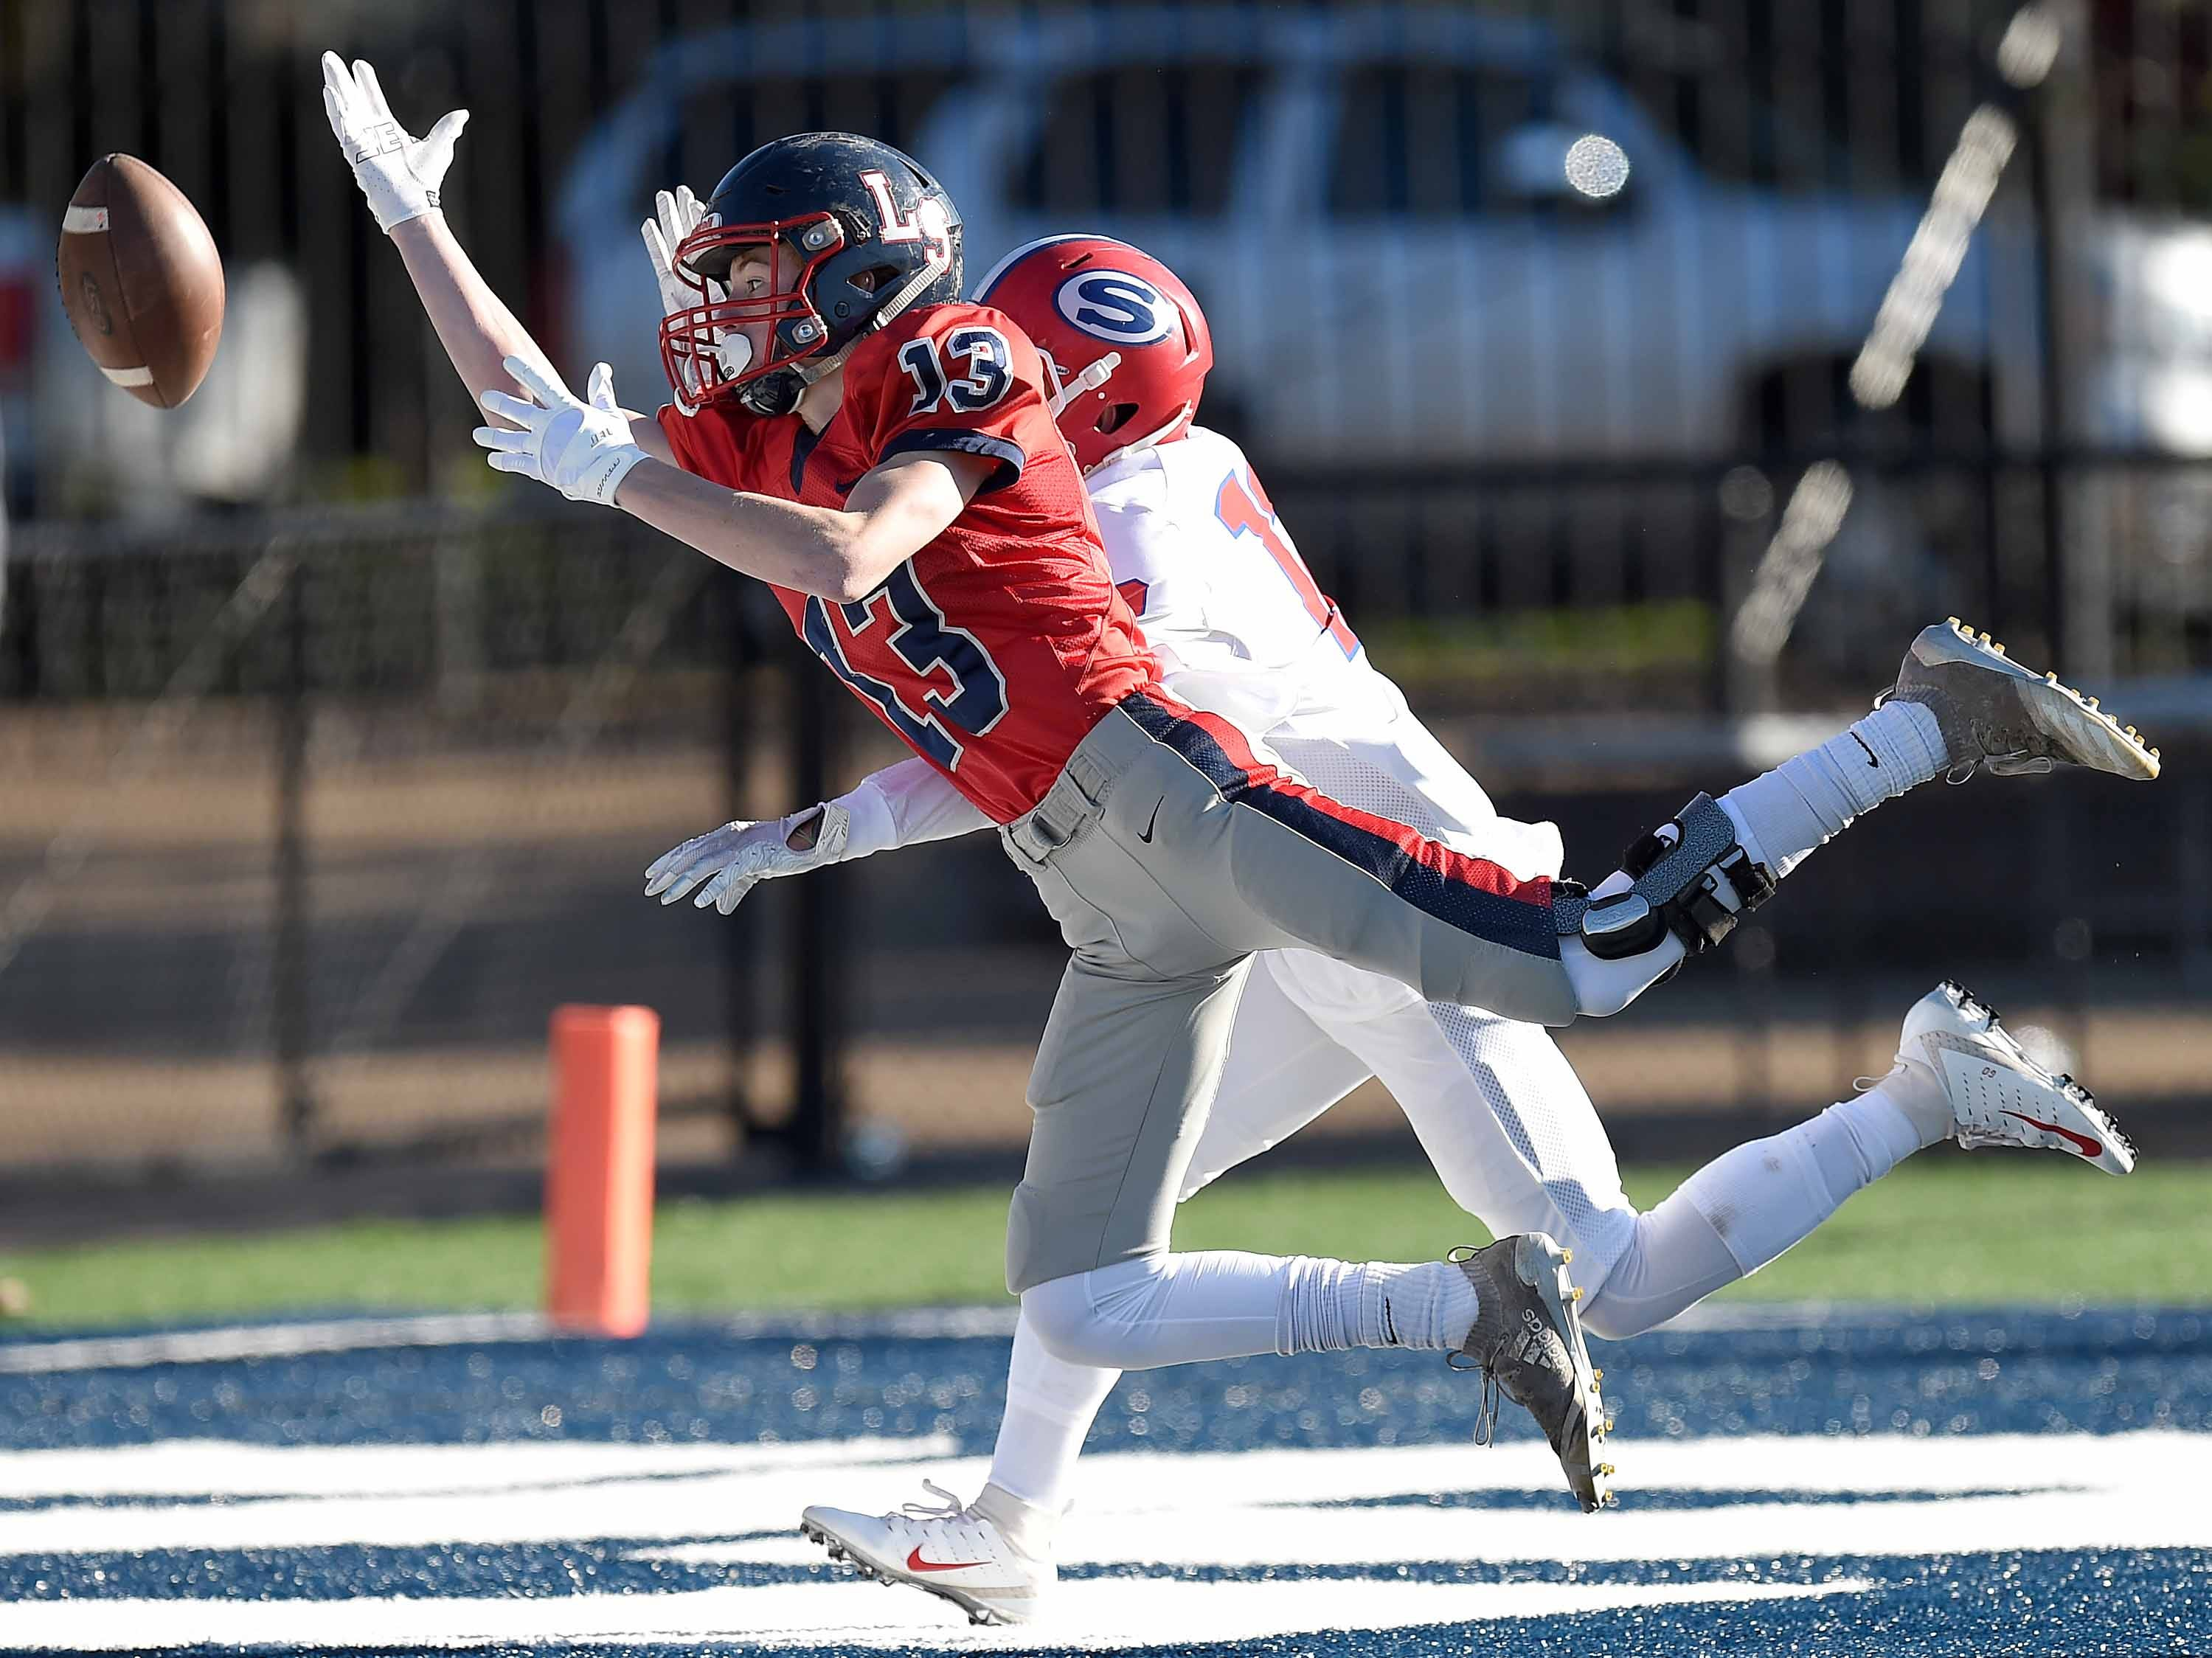 Lamar School's Jacob Partridge (13) can't find the handle on a pass in the end zone against Simpson Academy on Thursday, November 15, 2018, in the MAIS Class AAAA-D2 Football Championship at Jackson Academy in Jackson, Miss.